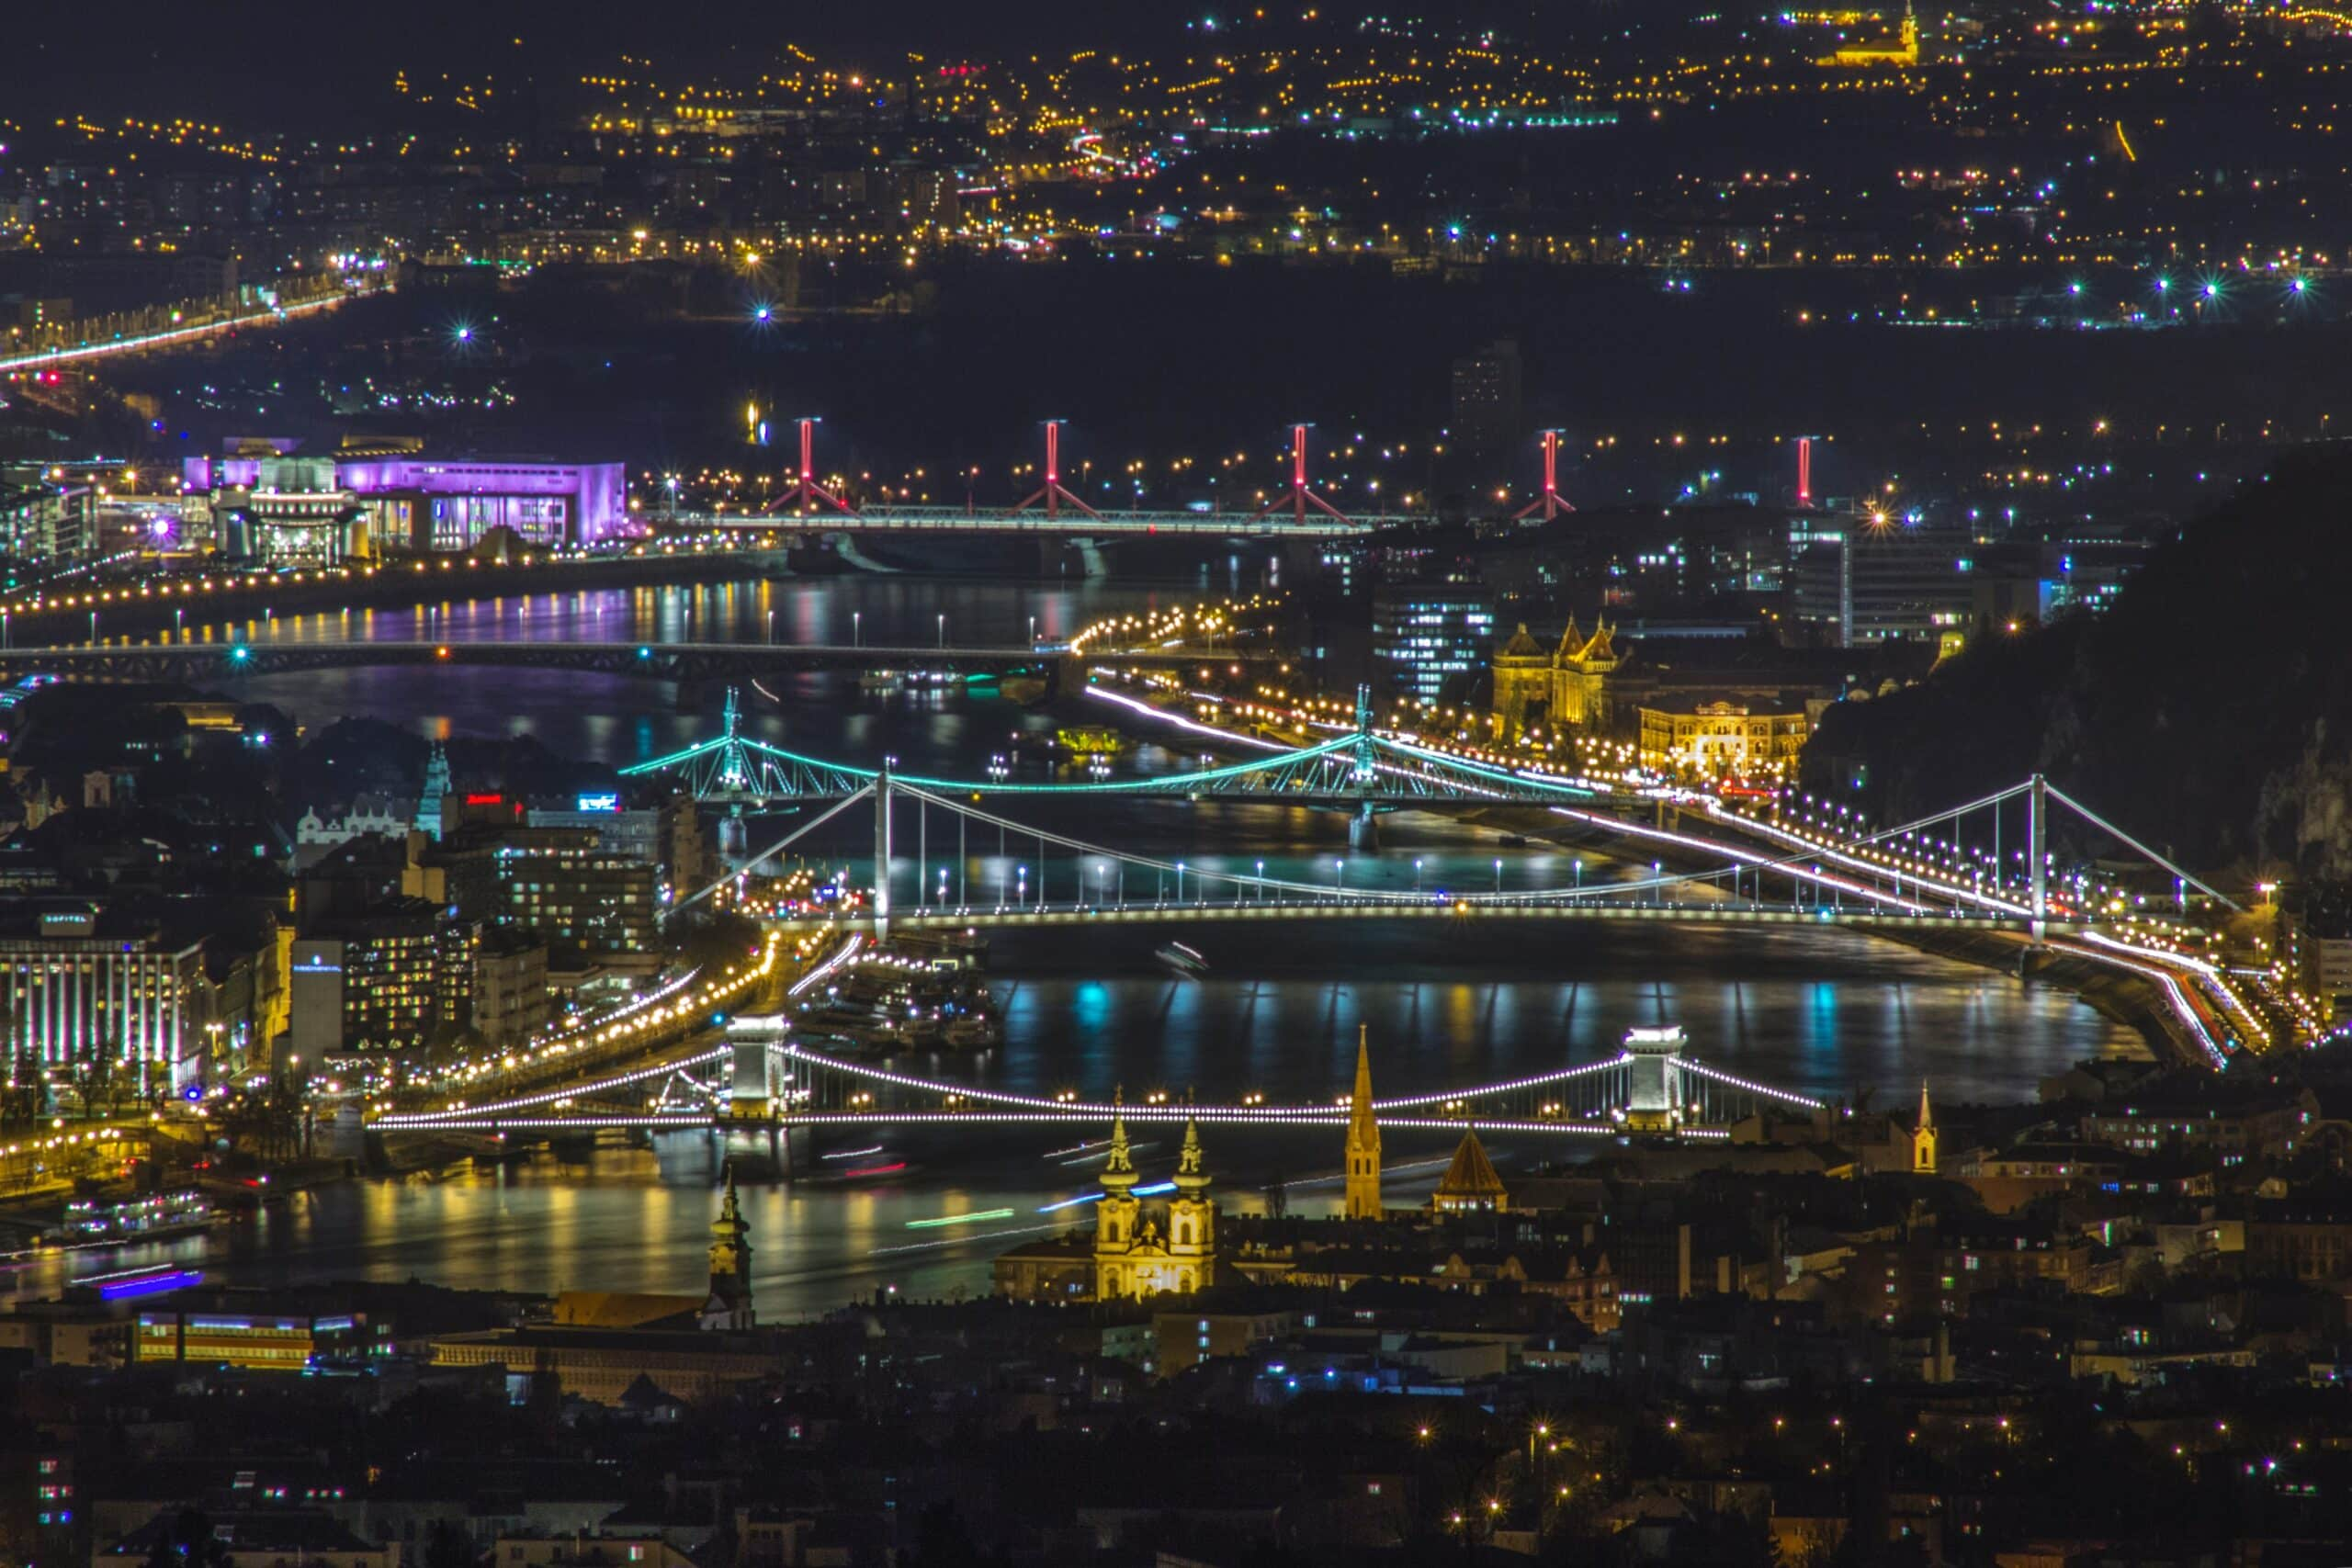 aerial photo of lighted city